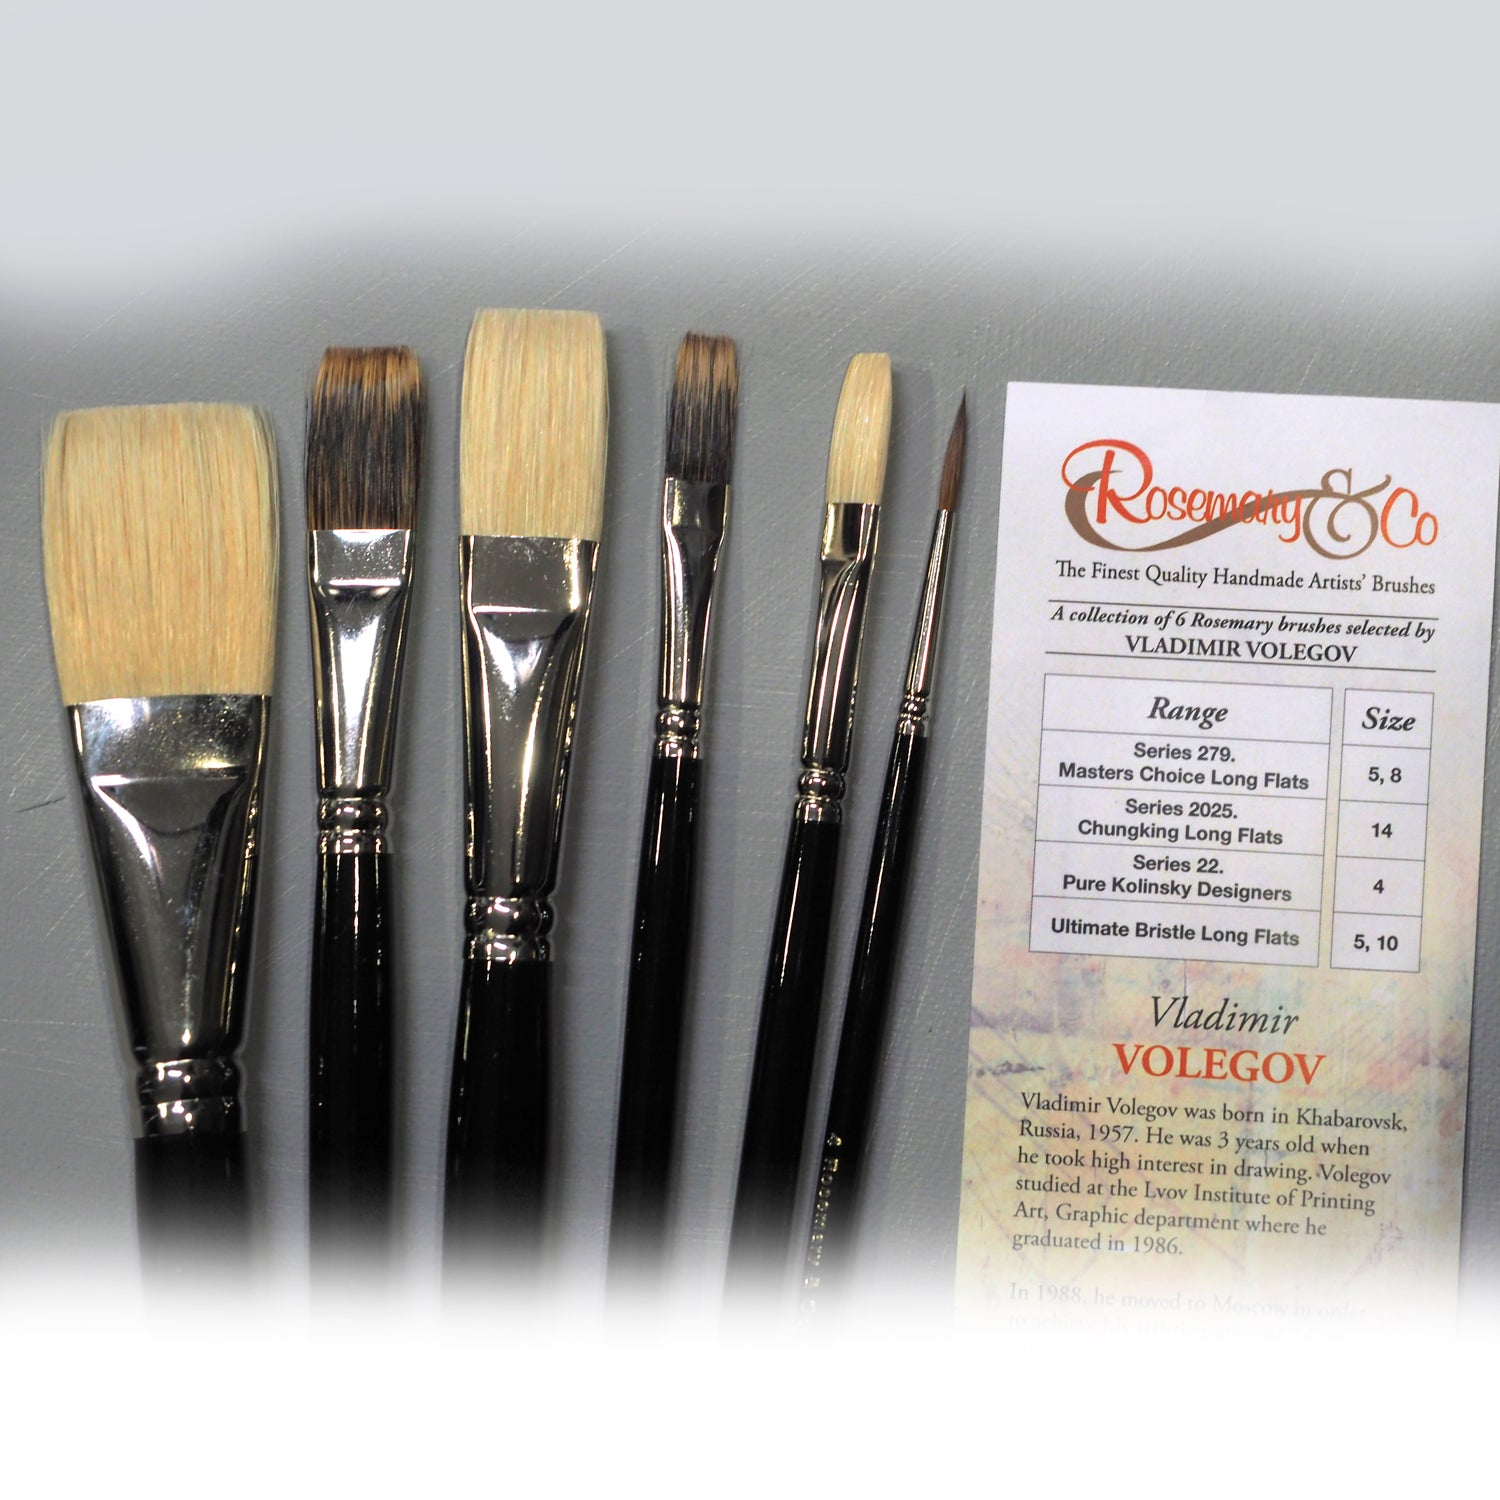 Image of Vladimir Volegov Rosemary&Co Brush Set